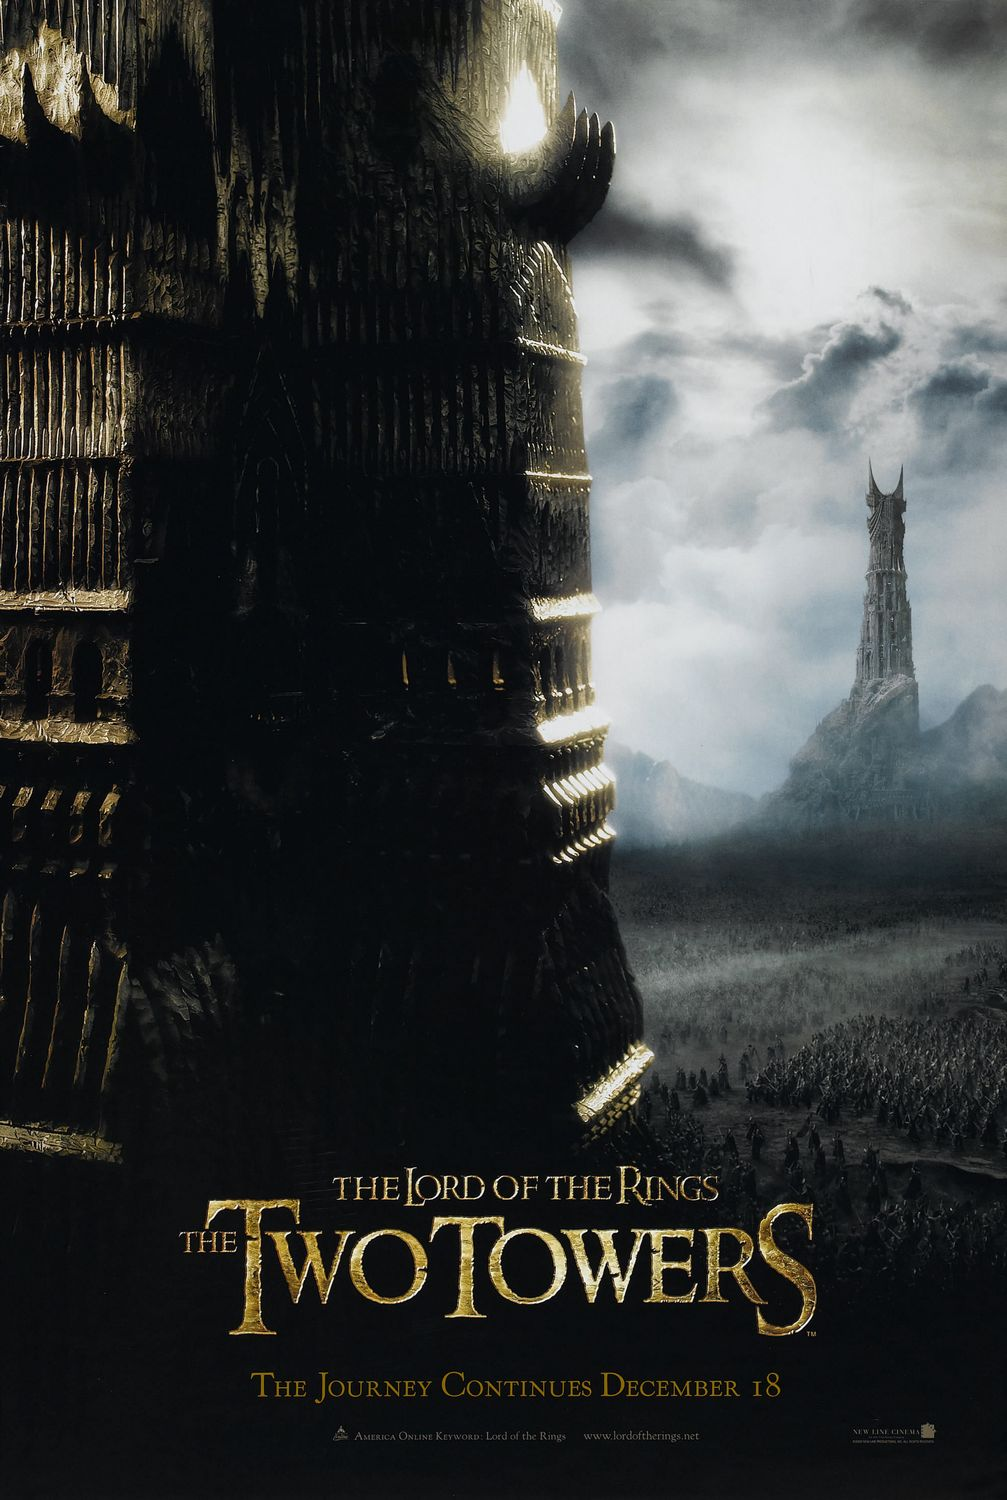 Chúa Tể Những Chiếc Nhẫn 2: Hai Tòa Tháp - The Lord Of The Rings 2: The Two Towers